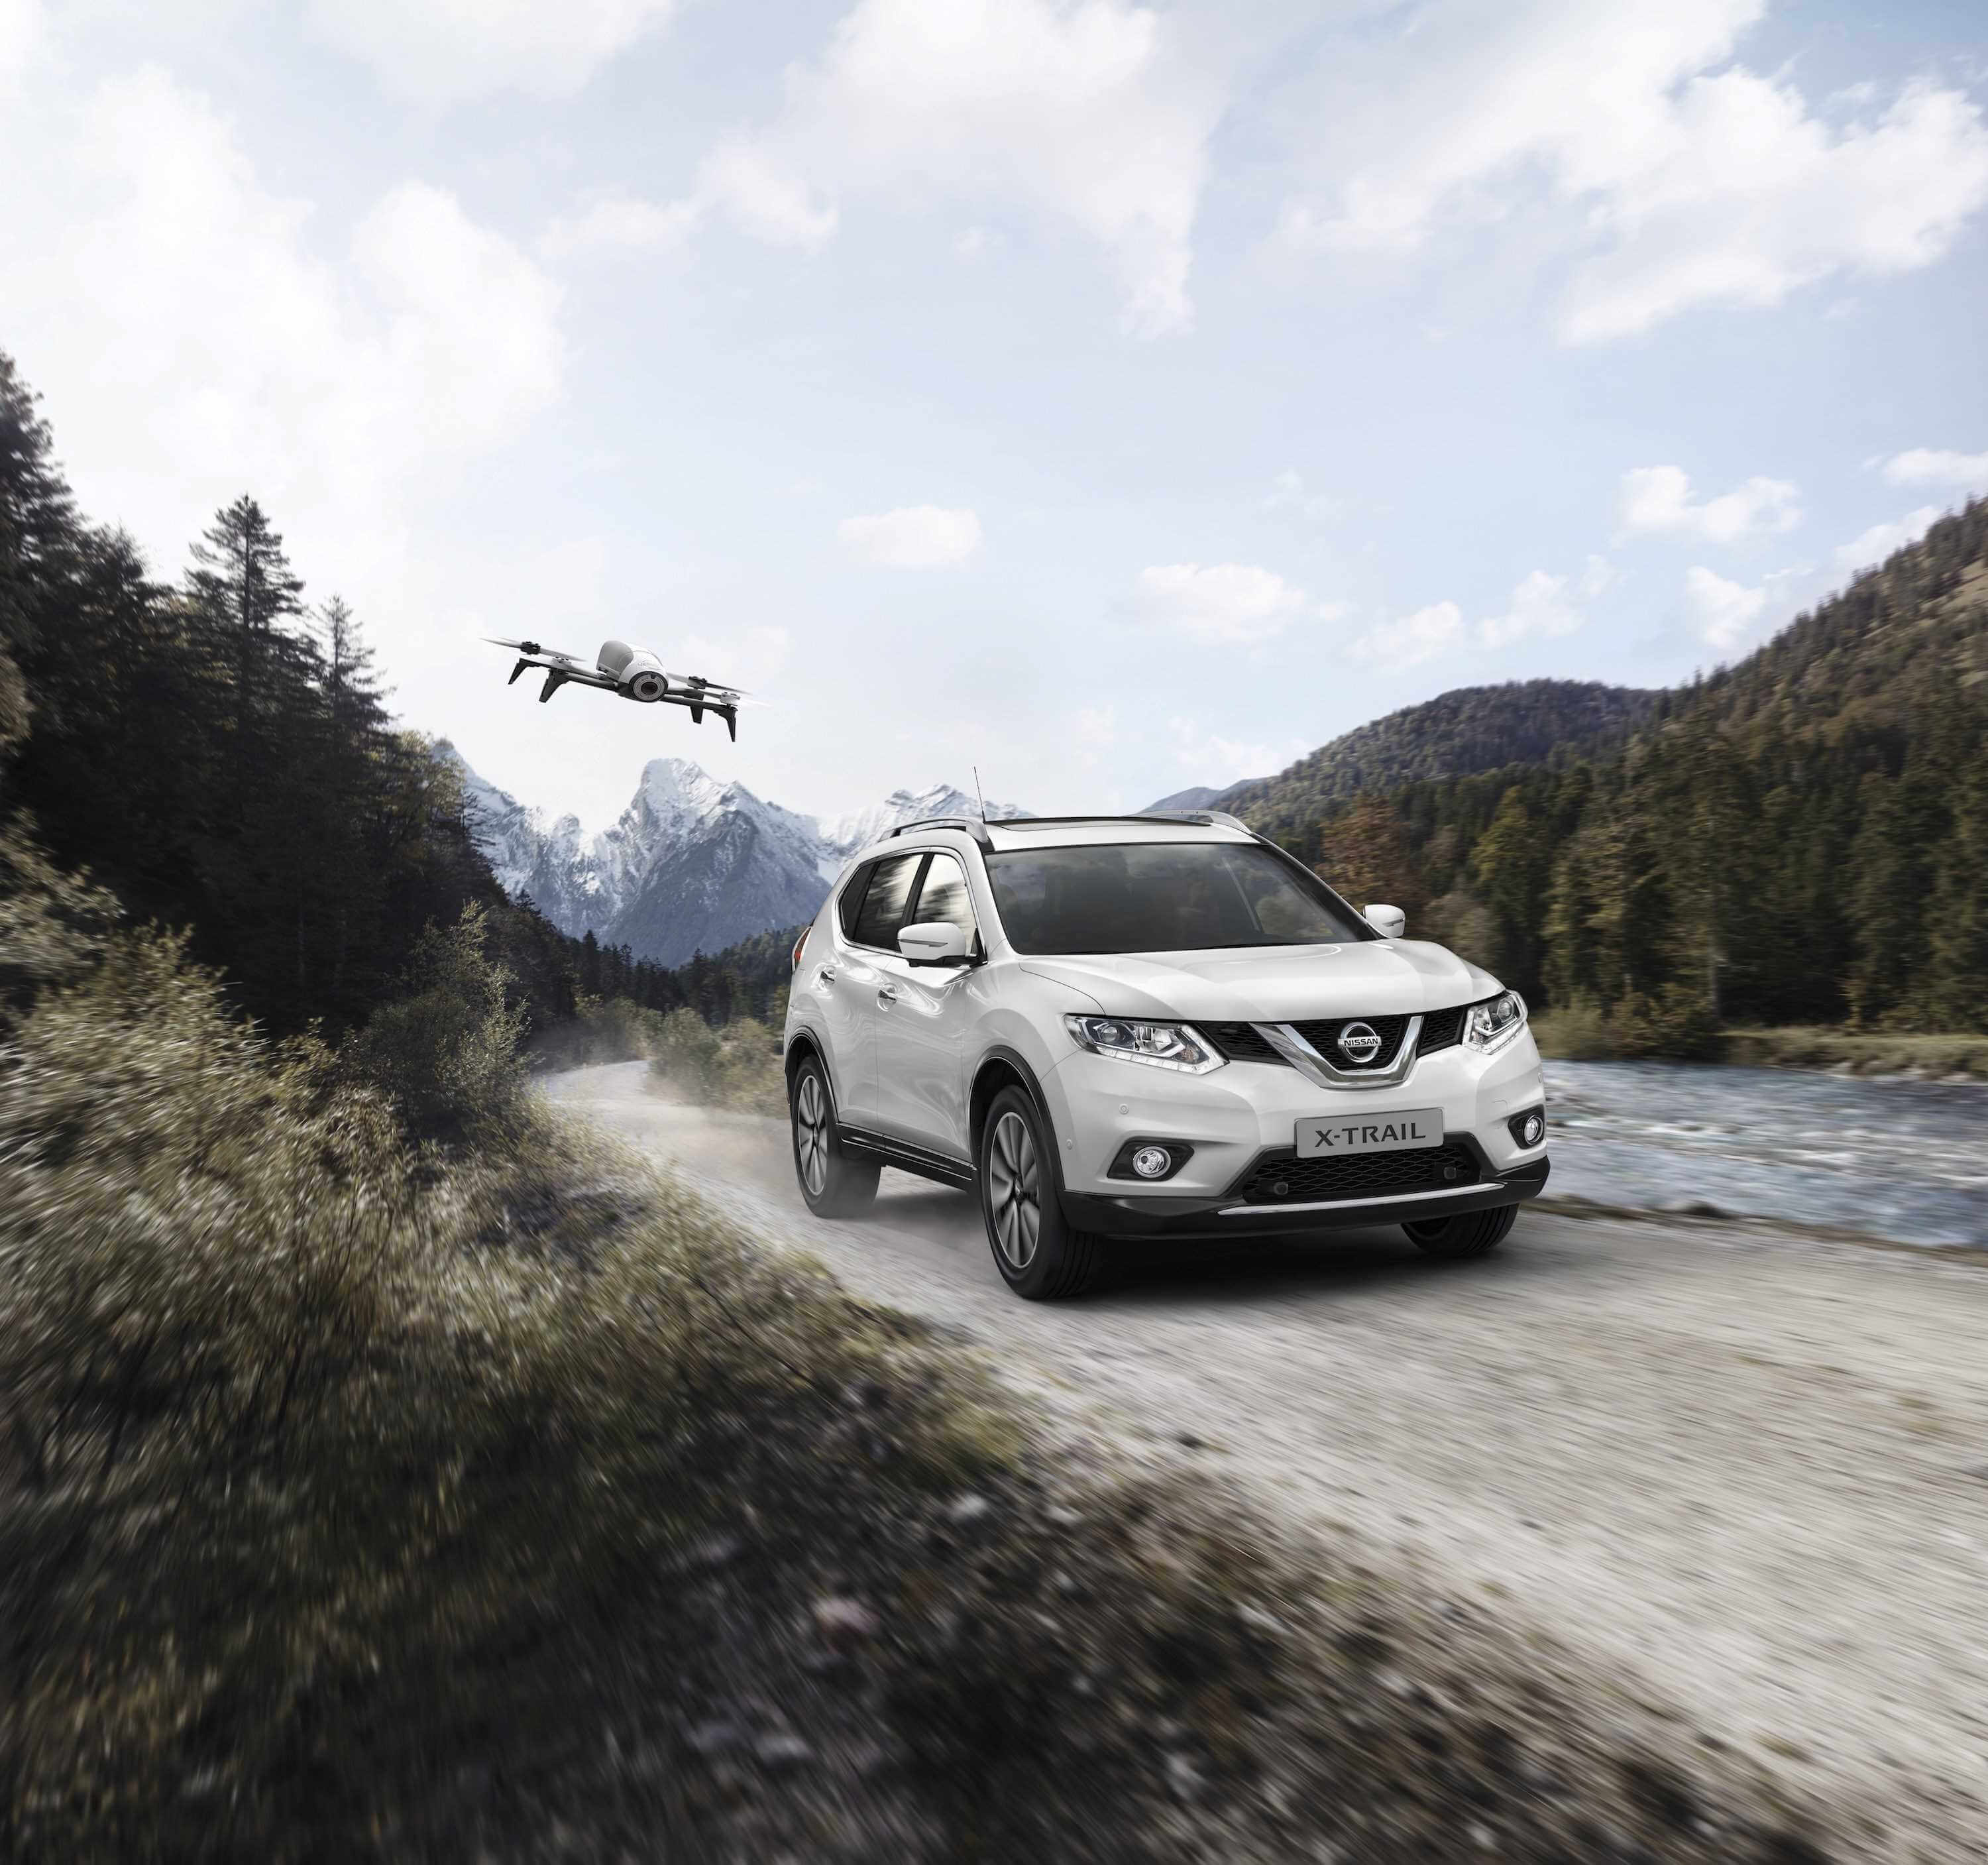 Nissan X-Trail Gets A Thrilling Addition For Capturing Memories